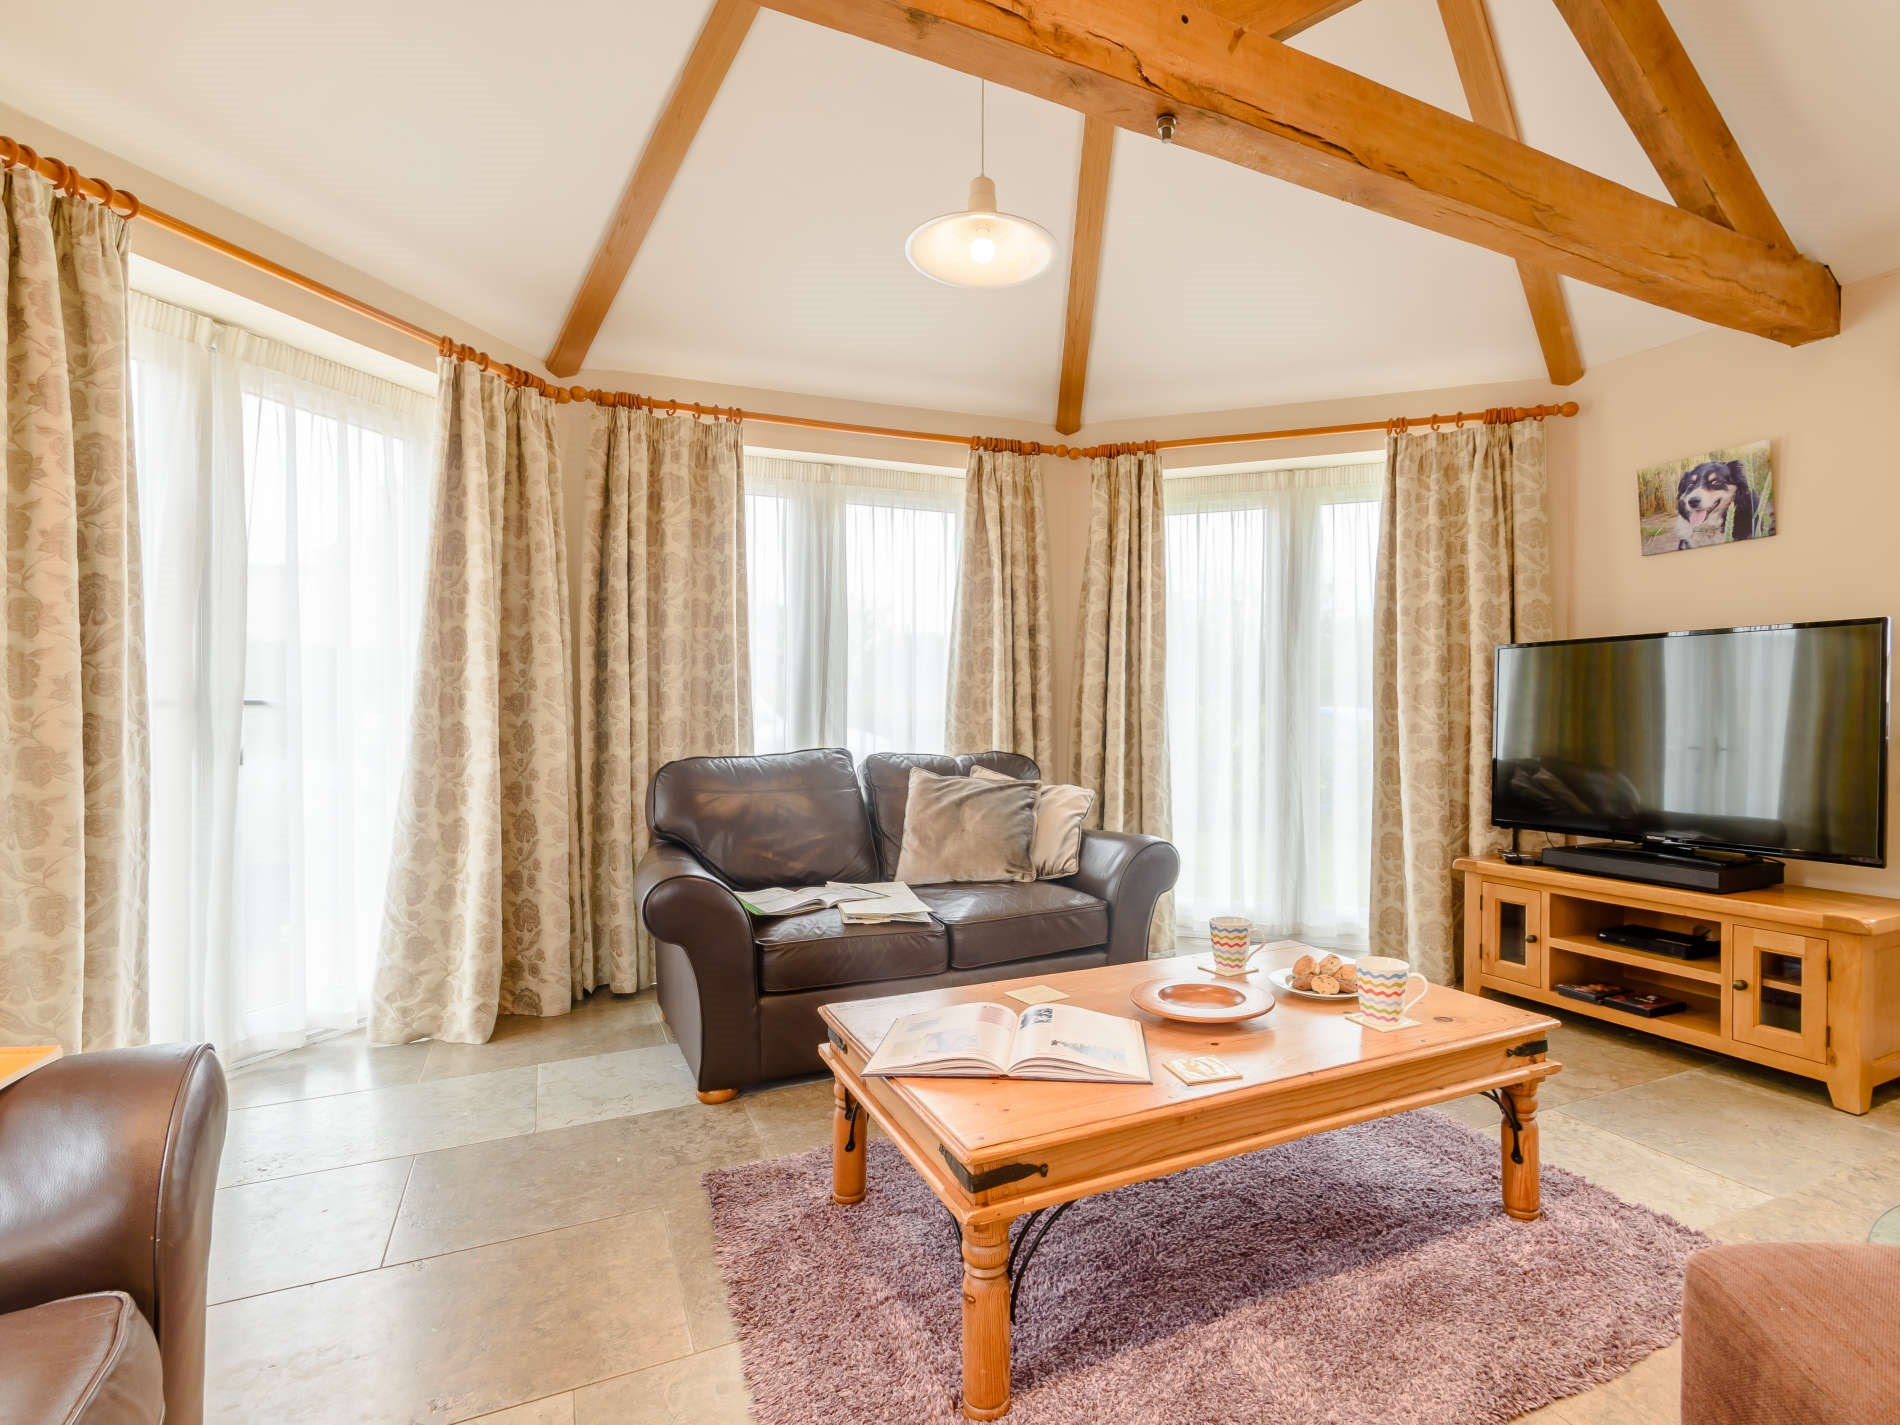 1 Bedroom Bungalow in North Yorkshire, Yorkshire Dales